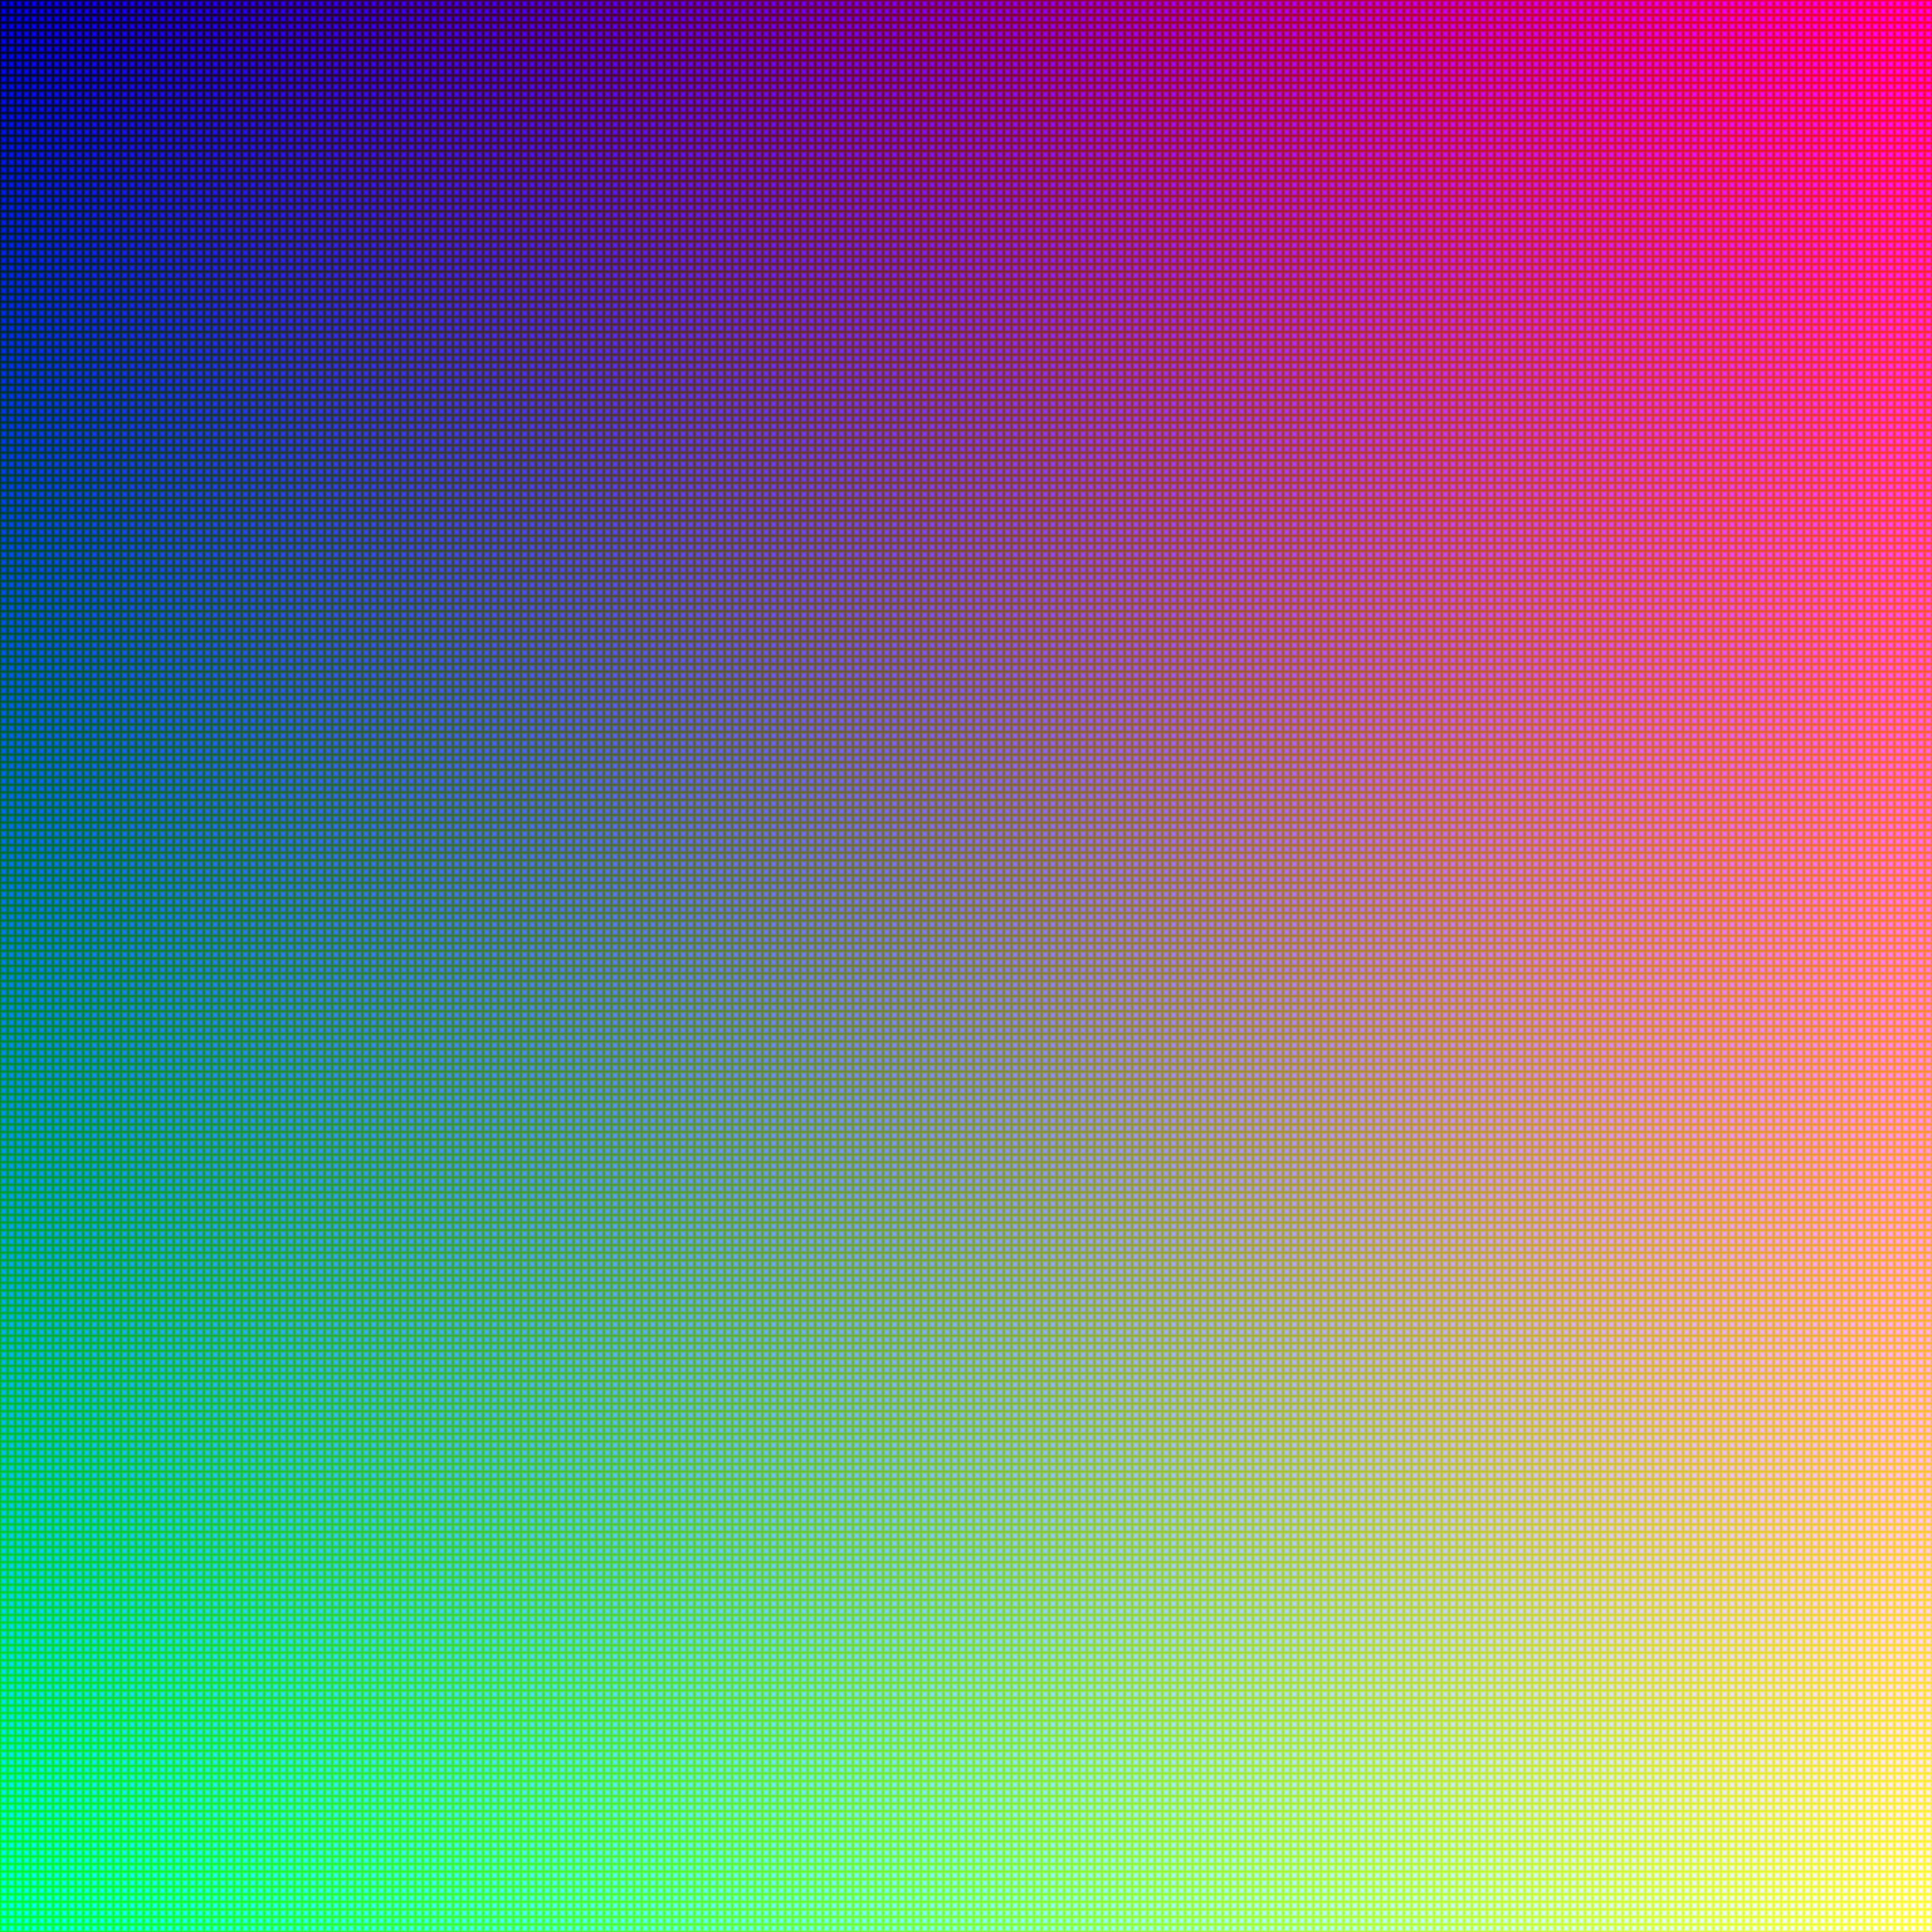 File:16777216colors.png.